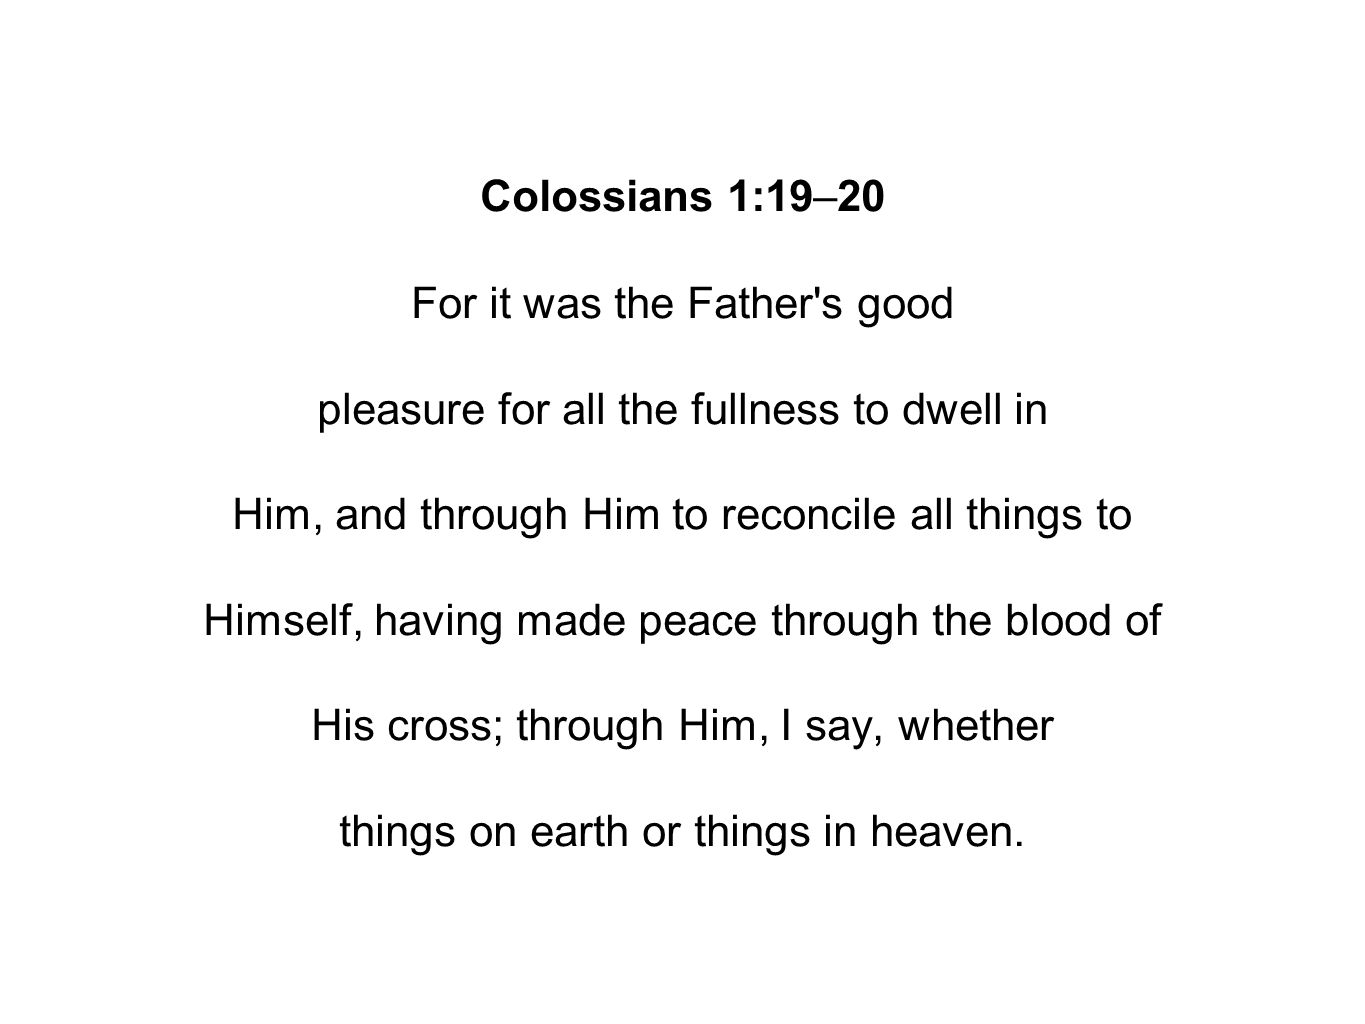 Colossians 1:19–20 For it was the Father s good pleasure for all the fullness to dwell in Him, and through Him to reconcile all things to Himself, having made peace through the blood of His cross; through Him, I say, whether things on earth or things in heaven.